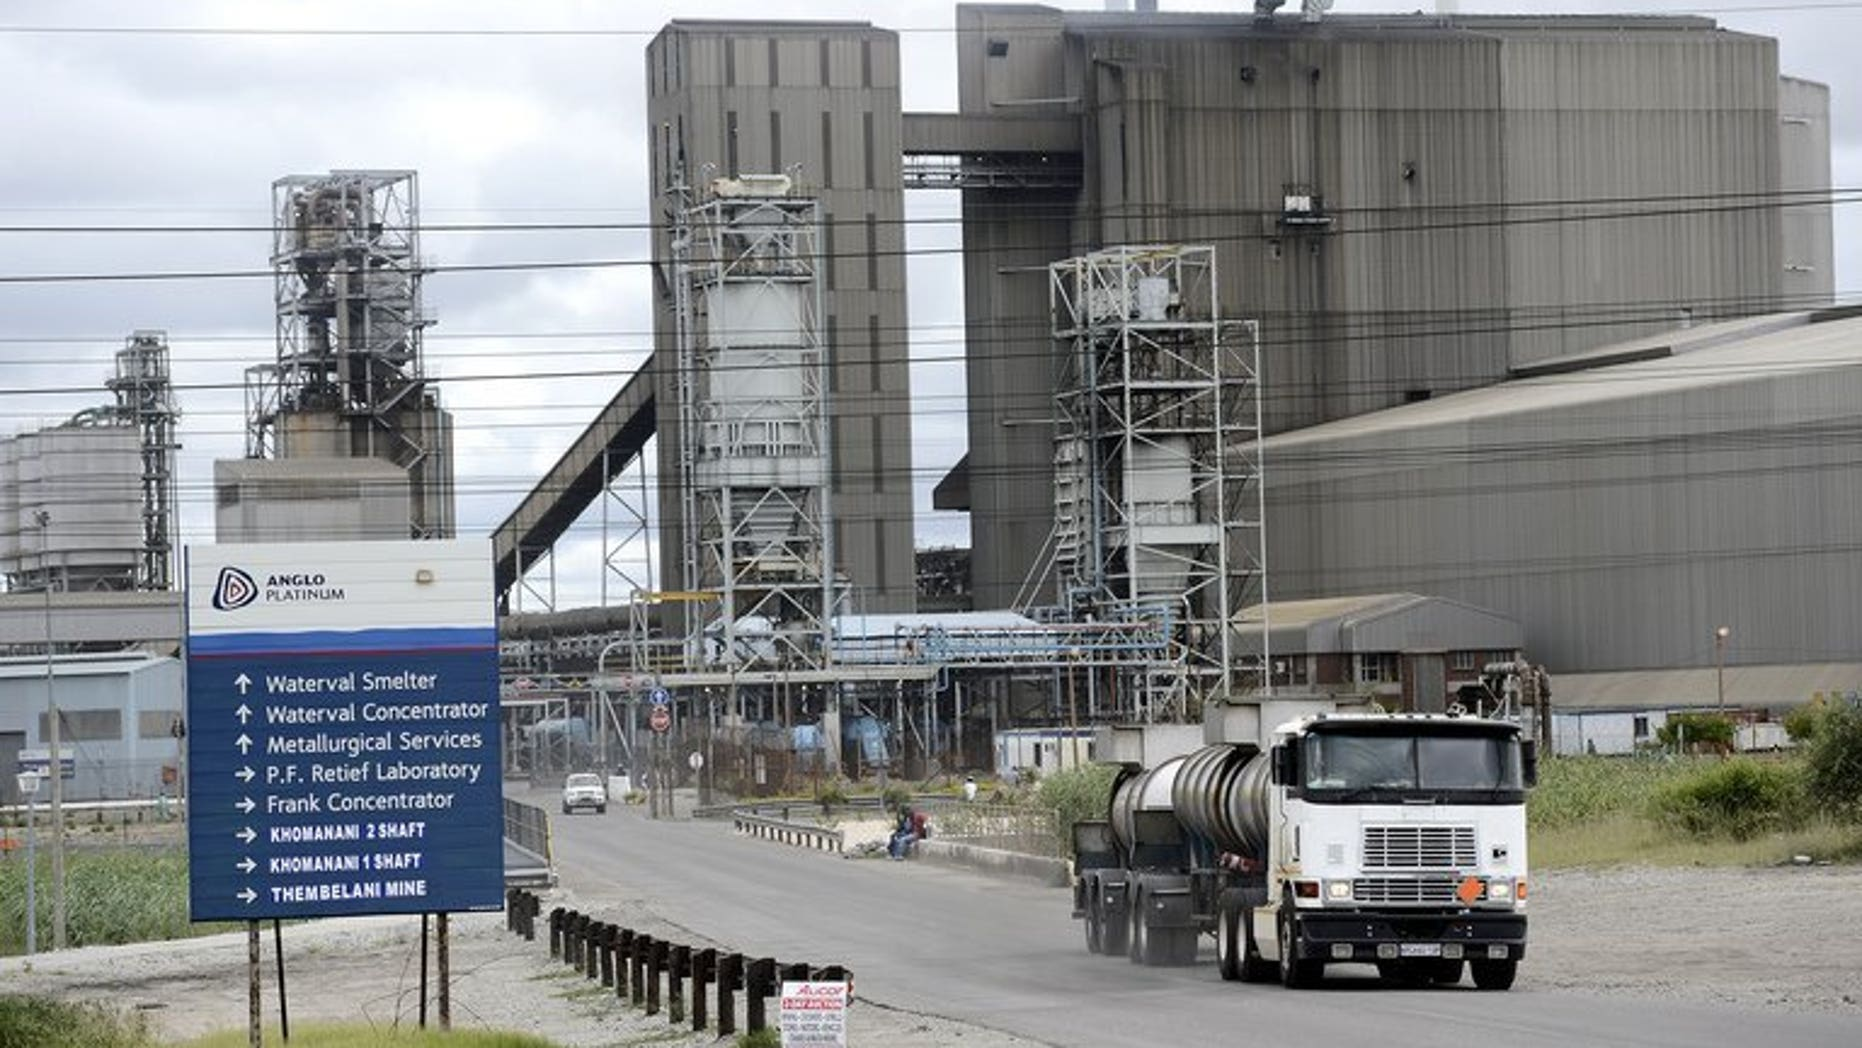 The Anglo American Platinum mine in Rustenburg, northwest of Johannesburg, on January 16. World number one platinum producer Amplats announced Monday it will begin firing an estimated 6,900 workers in South Africa on September 1.